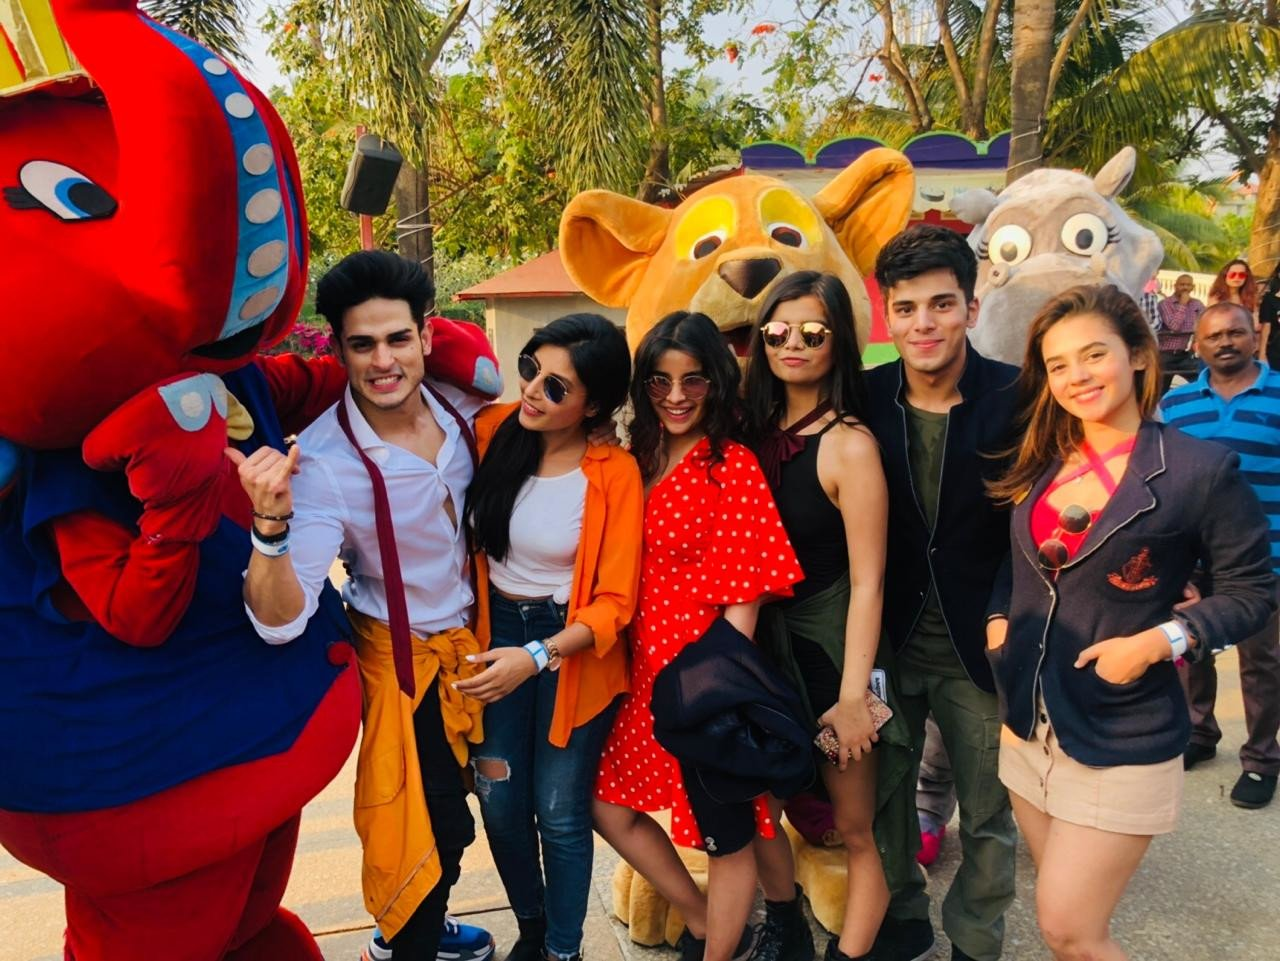 AltBalaji's 'Team Puncch Beat' goes on a picnic to relive college days